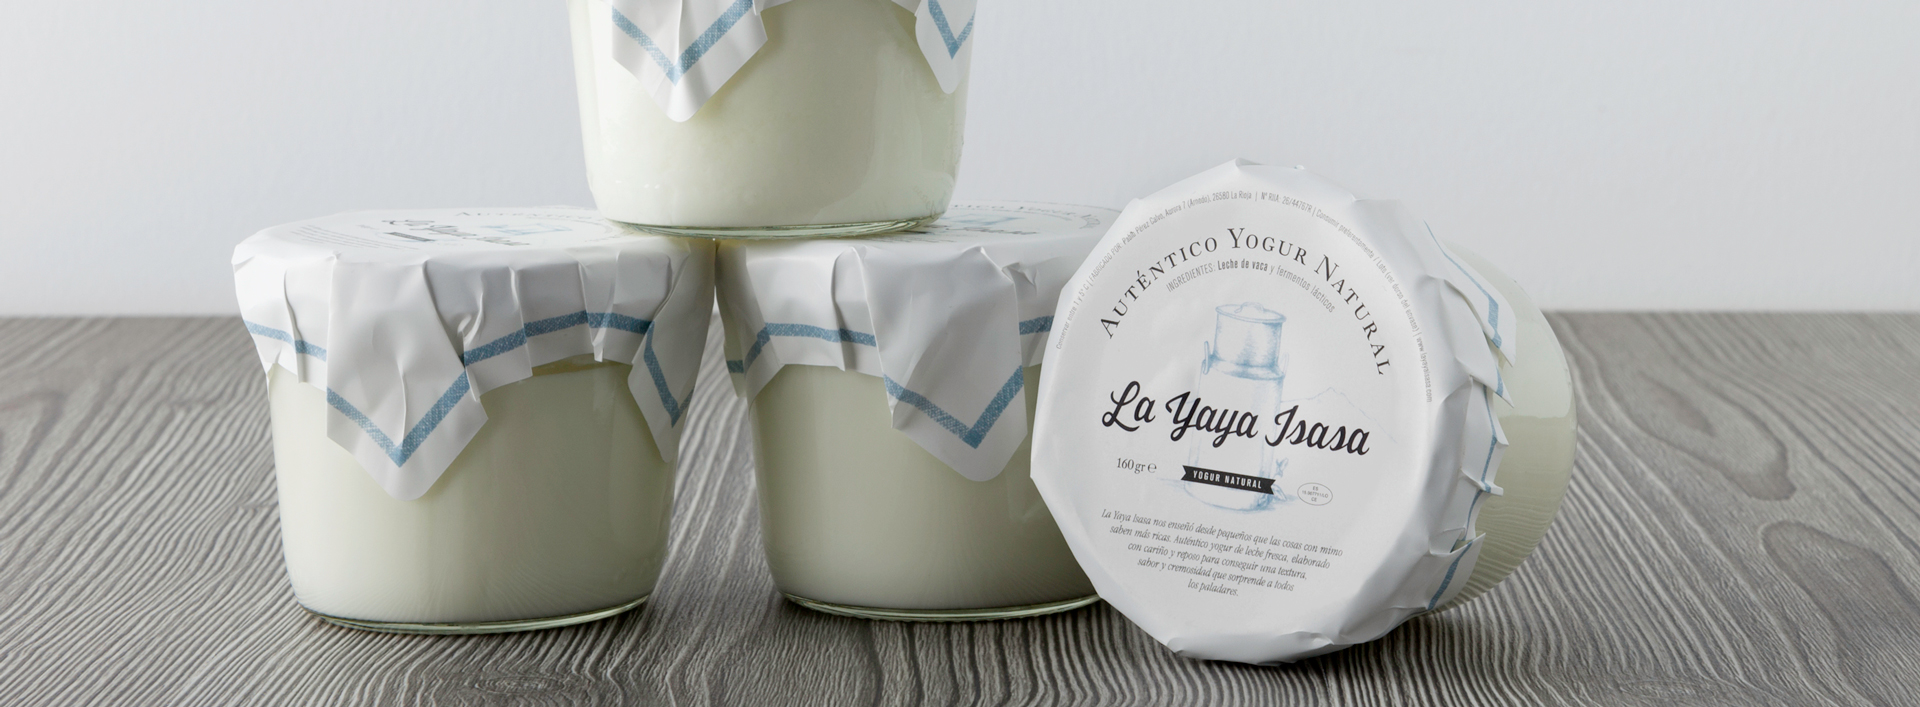 La Yaya Isasa Packaging Portada